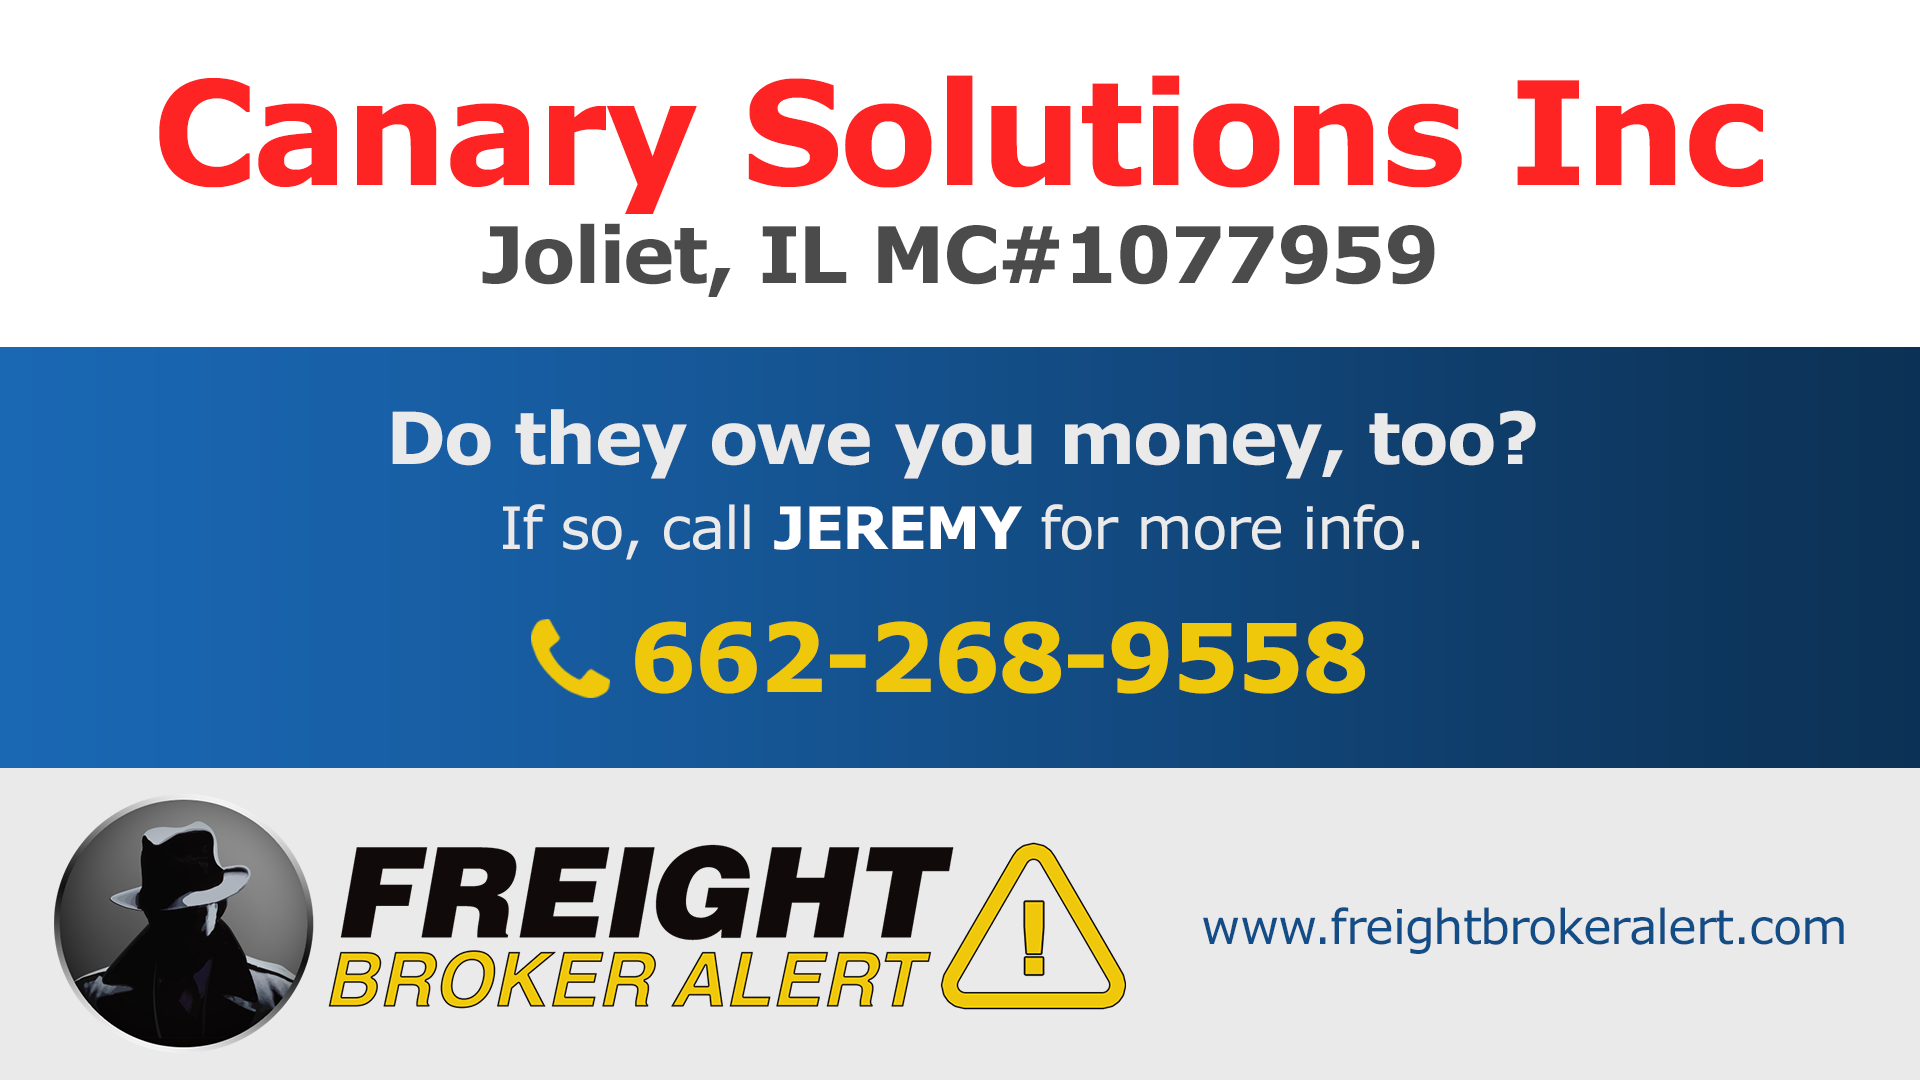 Canary Solutions Inc Illinois